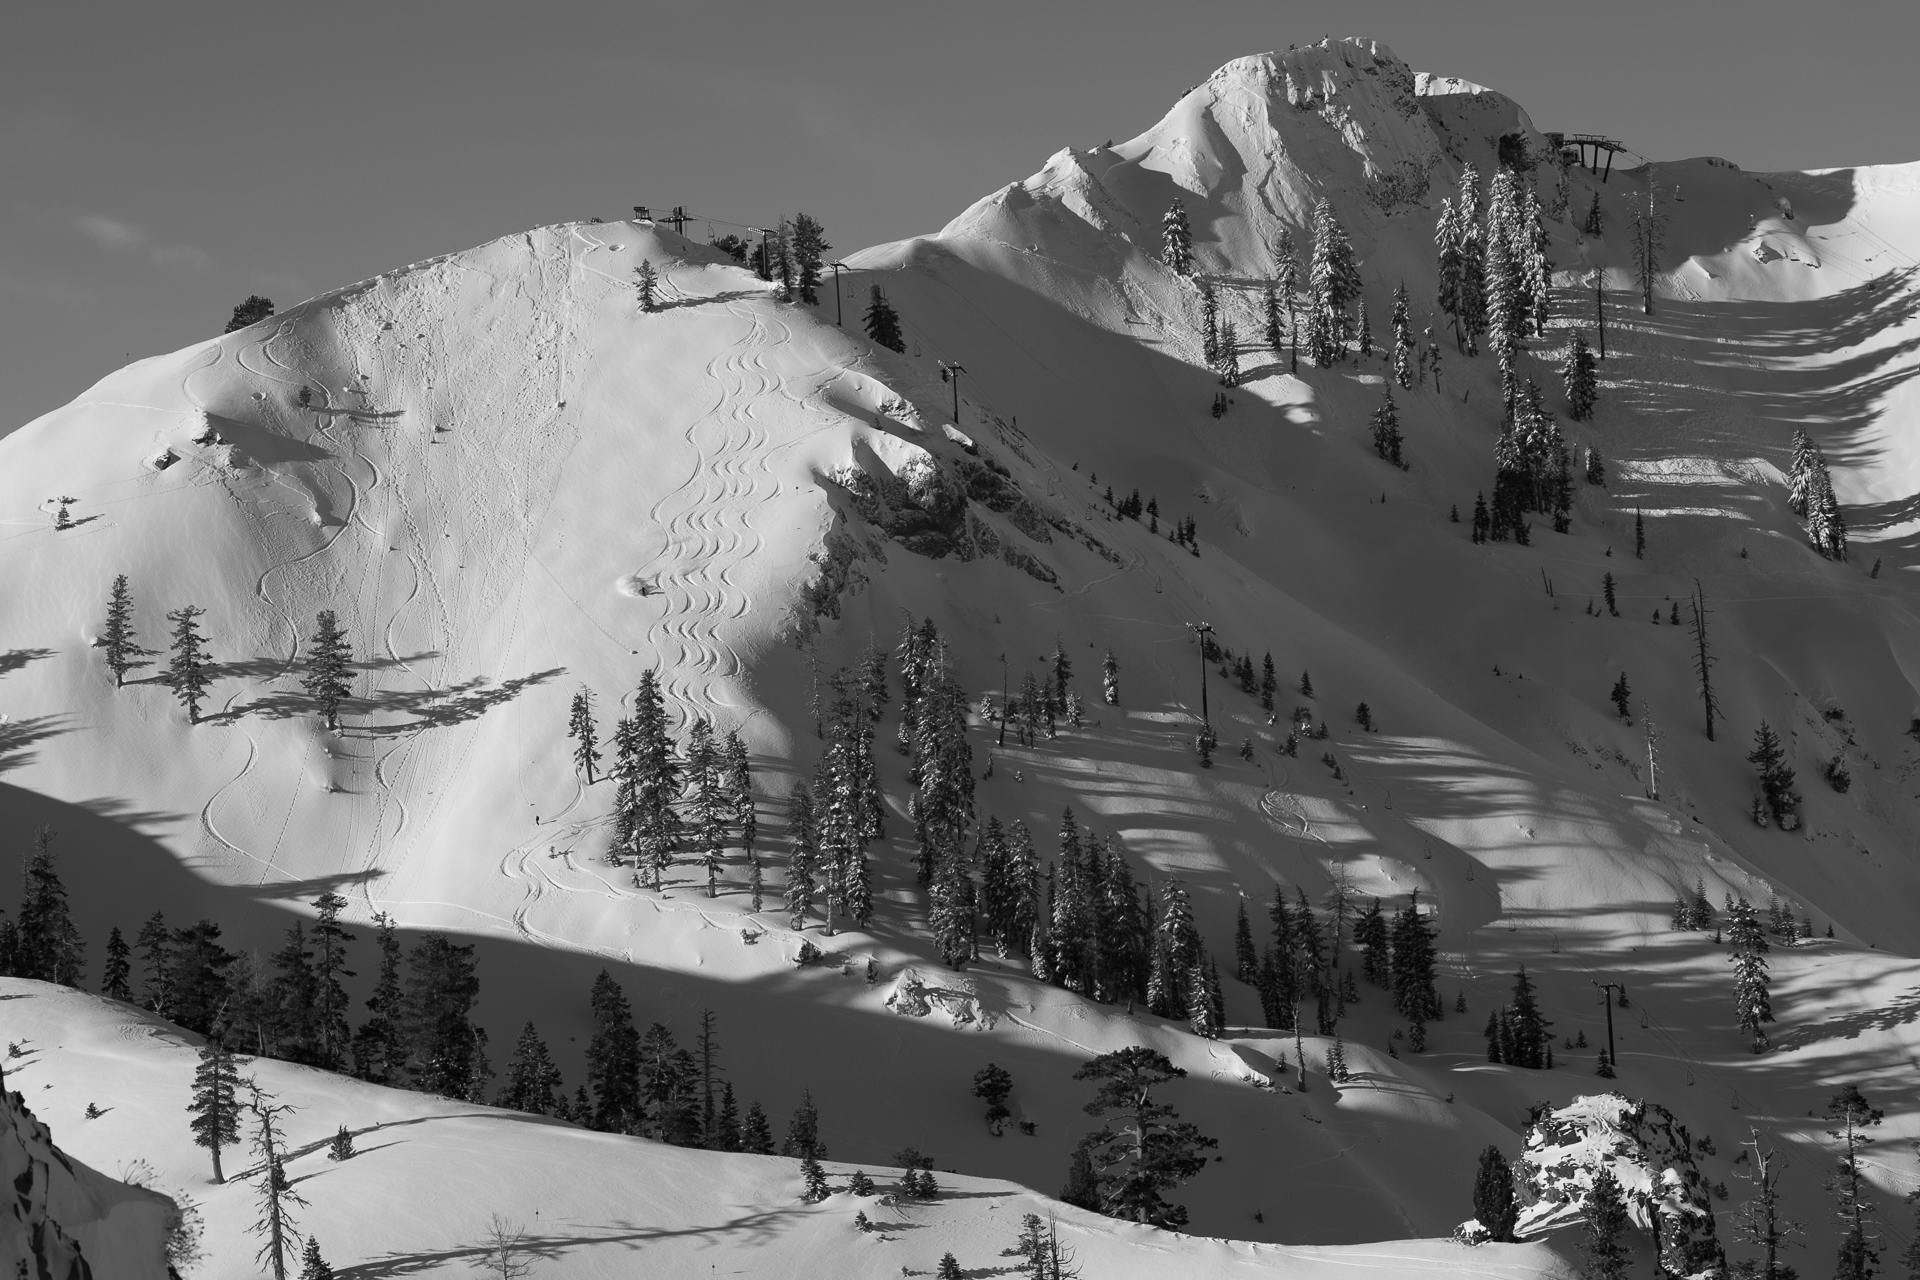 Squaw Valley's proposal to build some 1,500 new condos and hotel rooms, plus retail, restaurants, and an indoor recreation center, across 94 acres at the base of the ski area, was recently approved by the county. Now what?  Photo: Hank de Vré